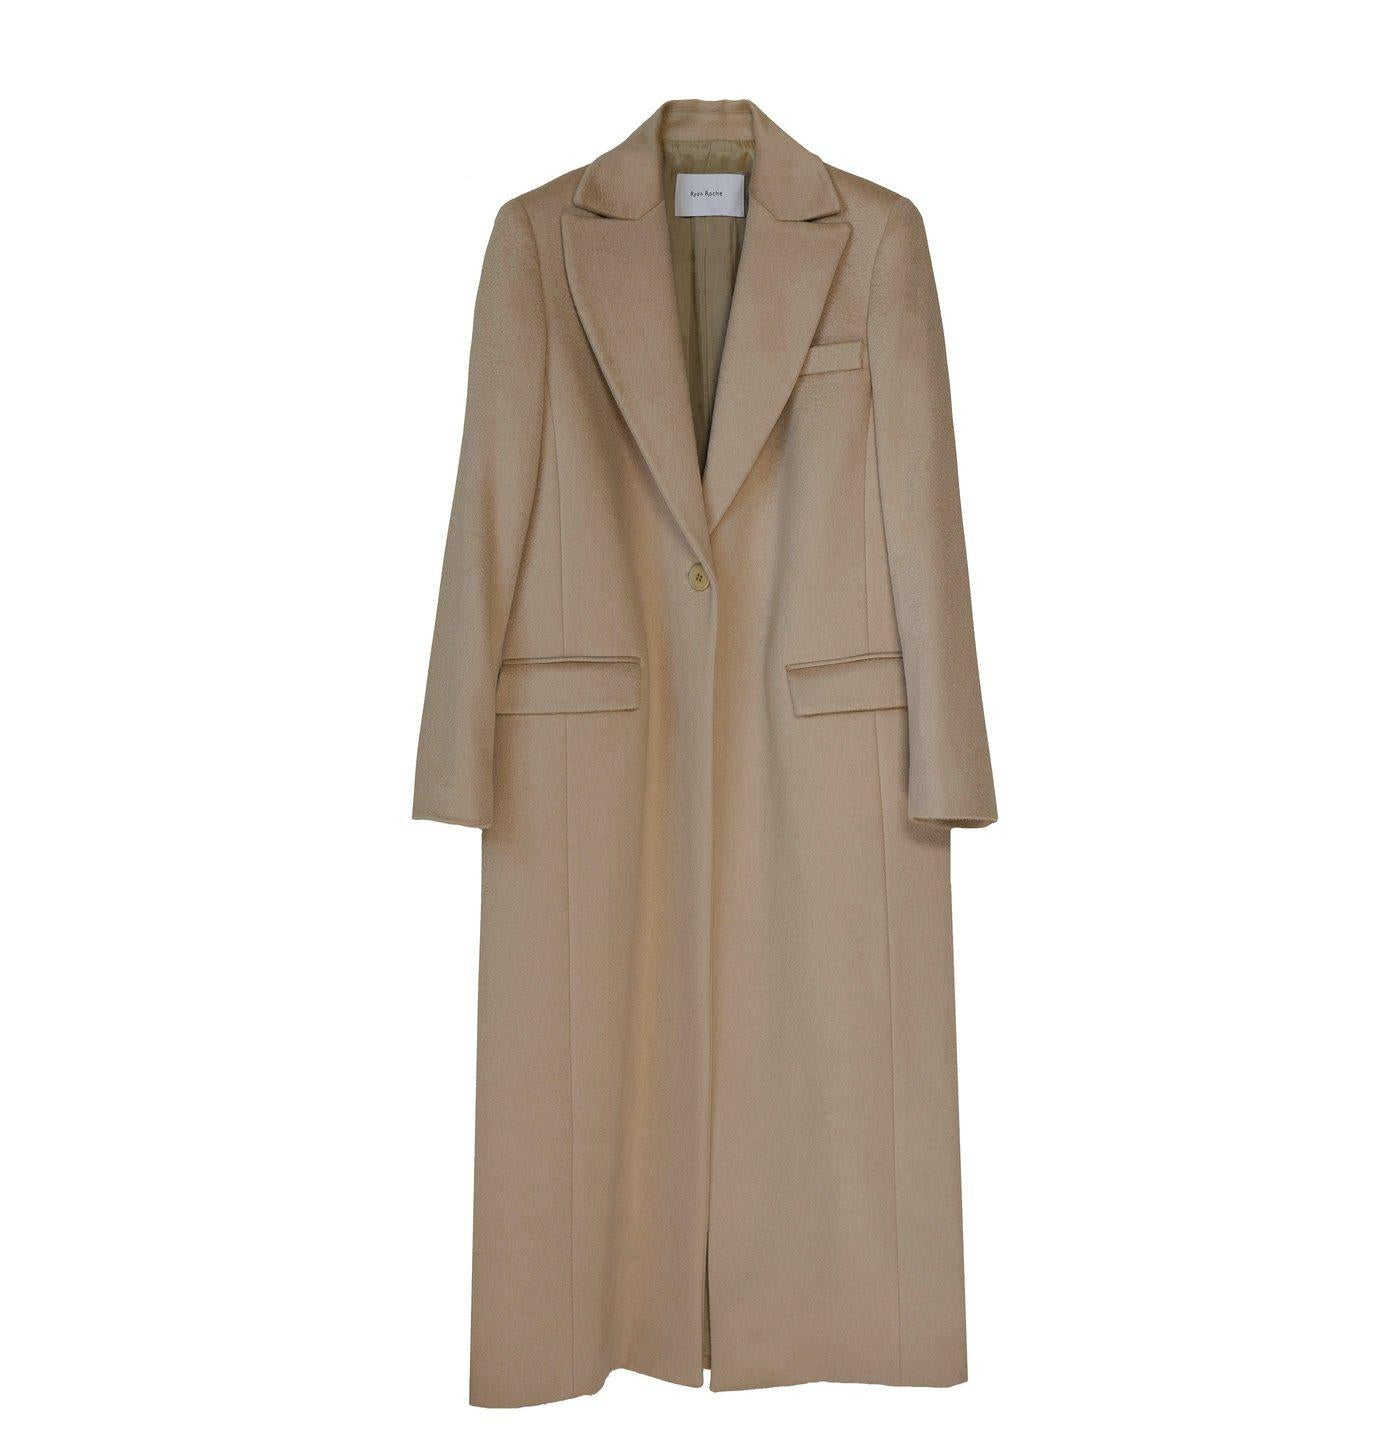 RYAN ROCHE CAMEL CASHMERE SILK LINED TAILORED LONG COAT